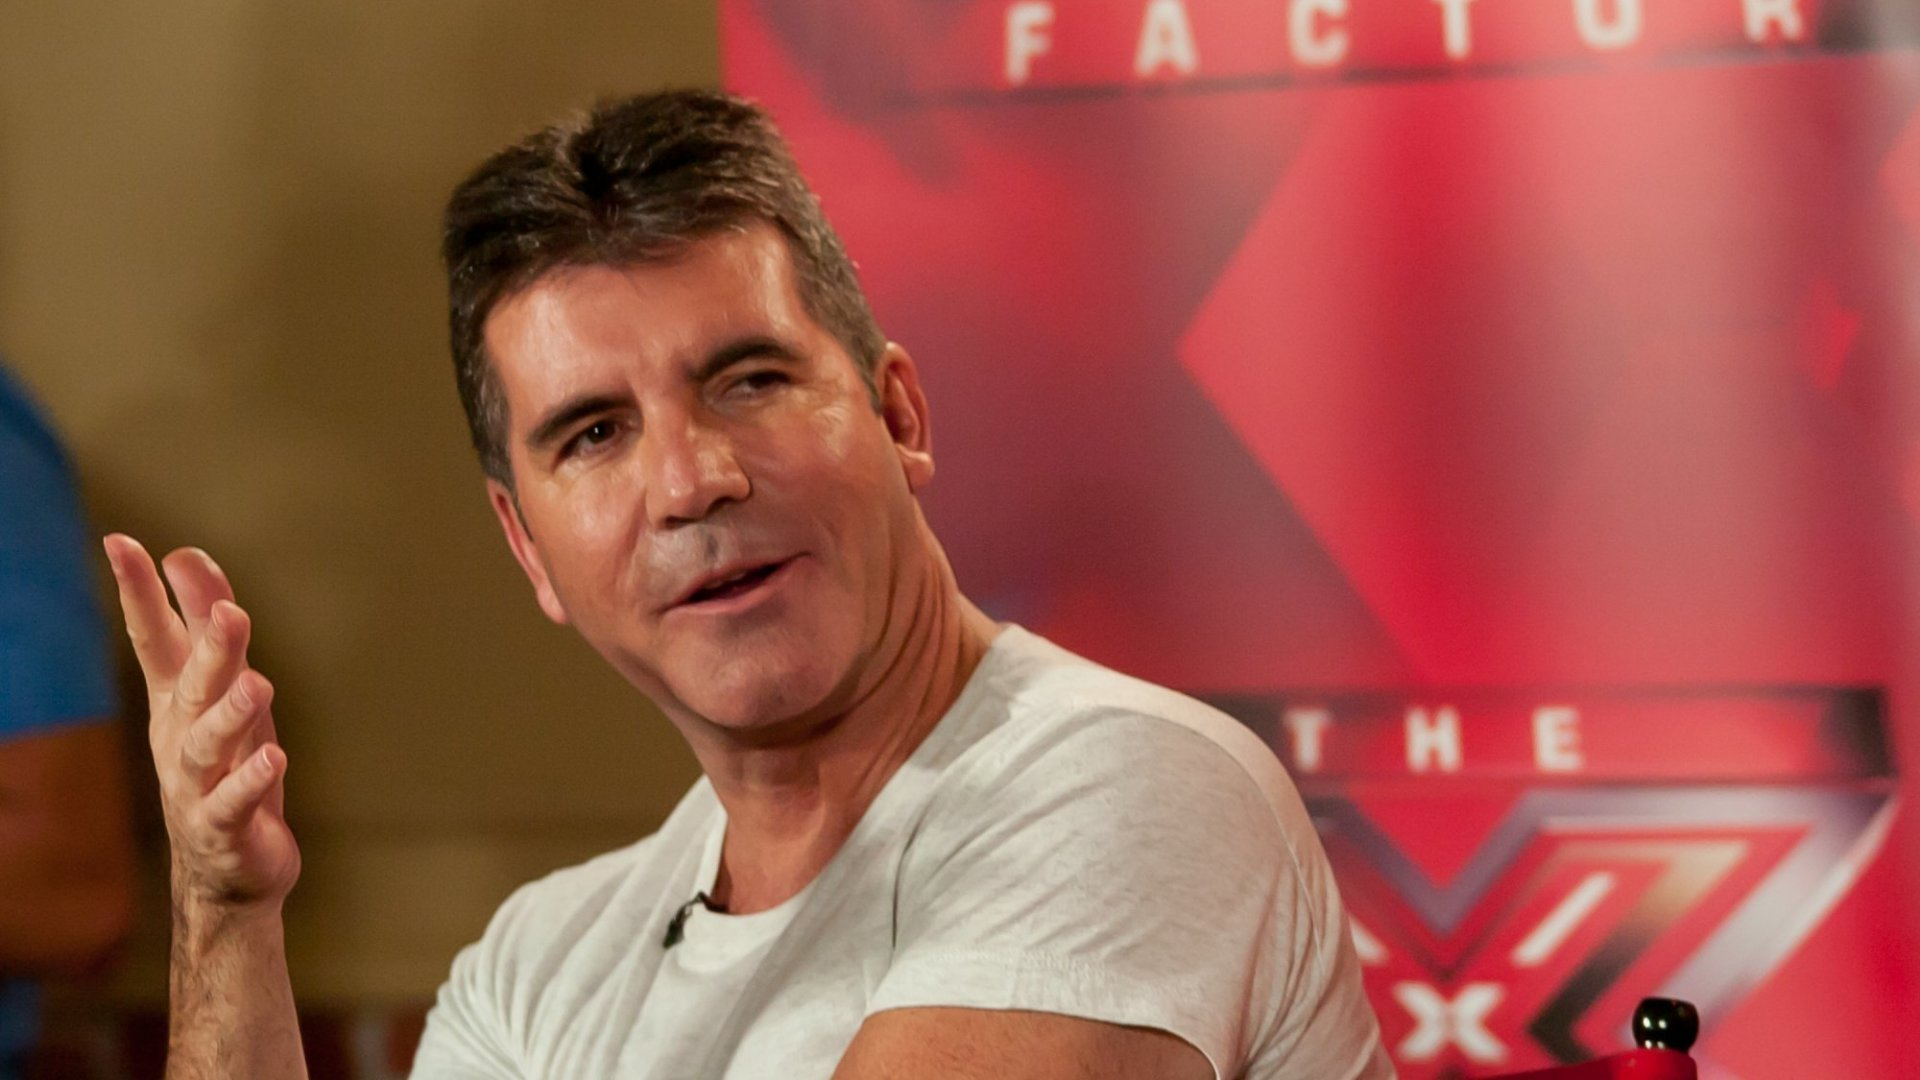 Simon Cowell attends the<em> X Factor</em> press conference at Nassau Veterans Memorial Coliseum in Uniondale, New York. (Photo by Steven A Henry/WireImage)